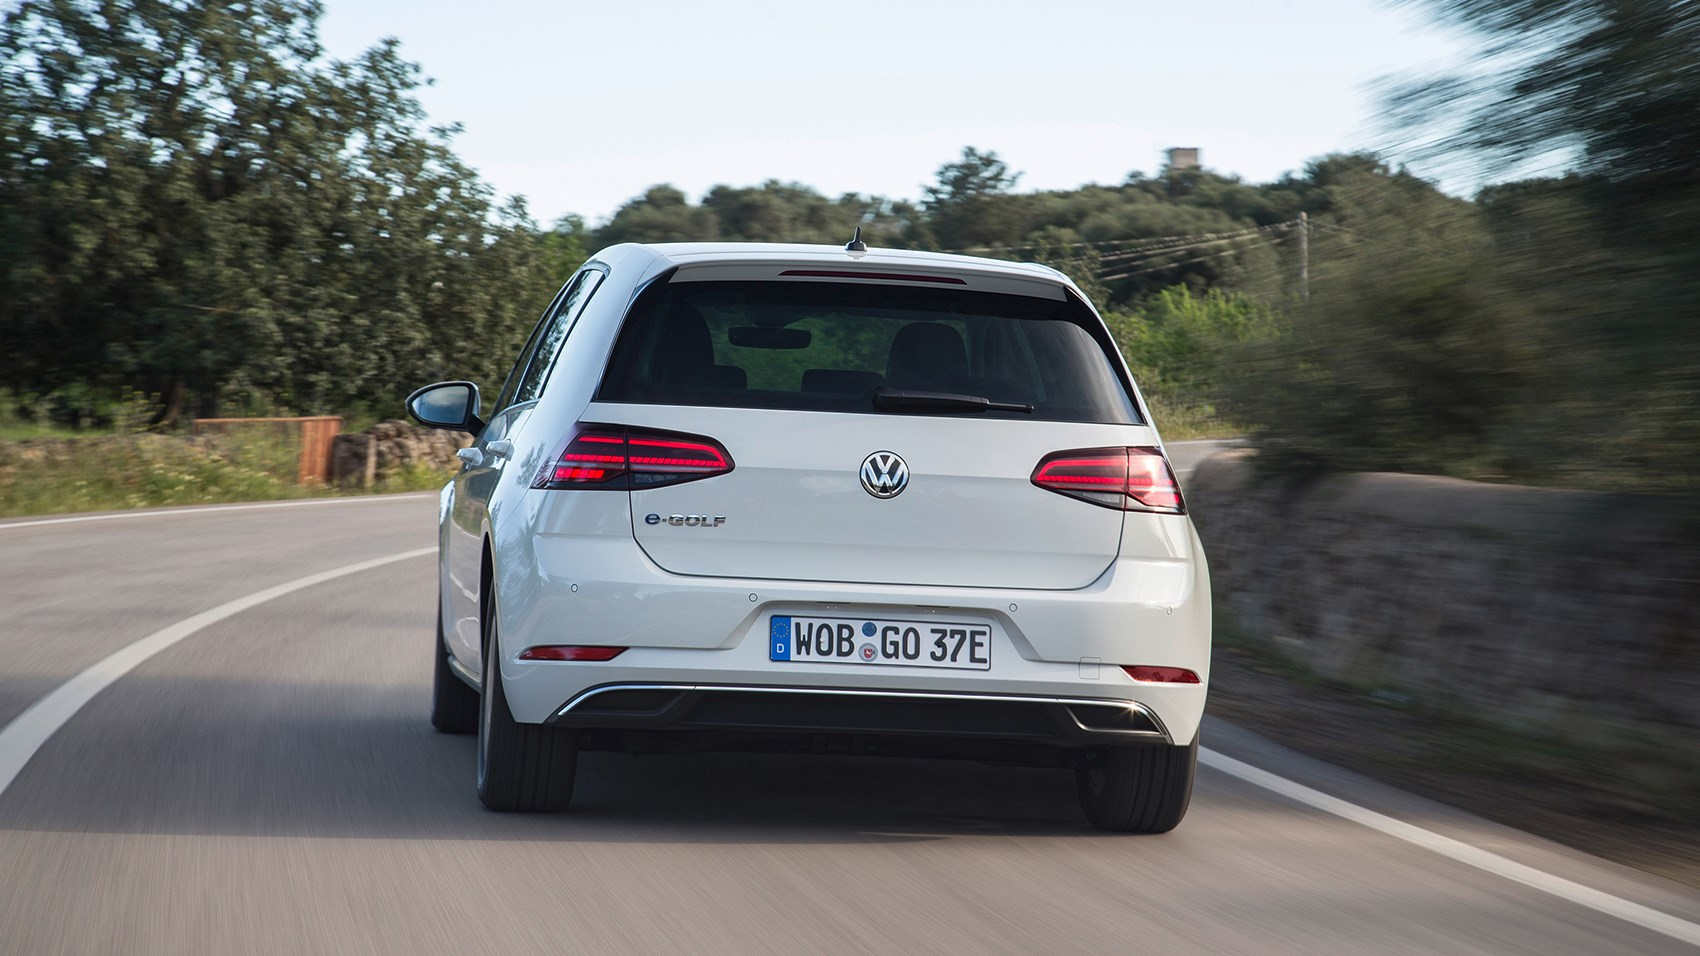 Vw egolf leasing